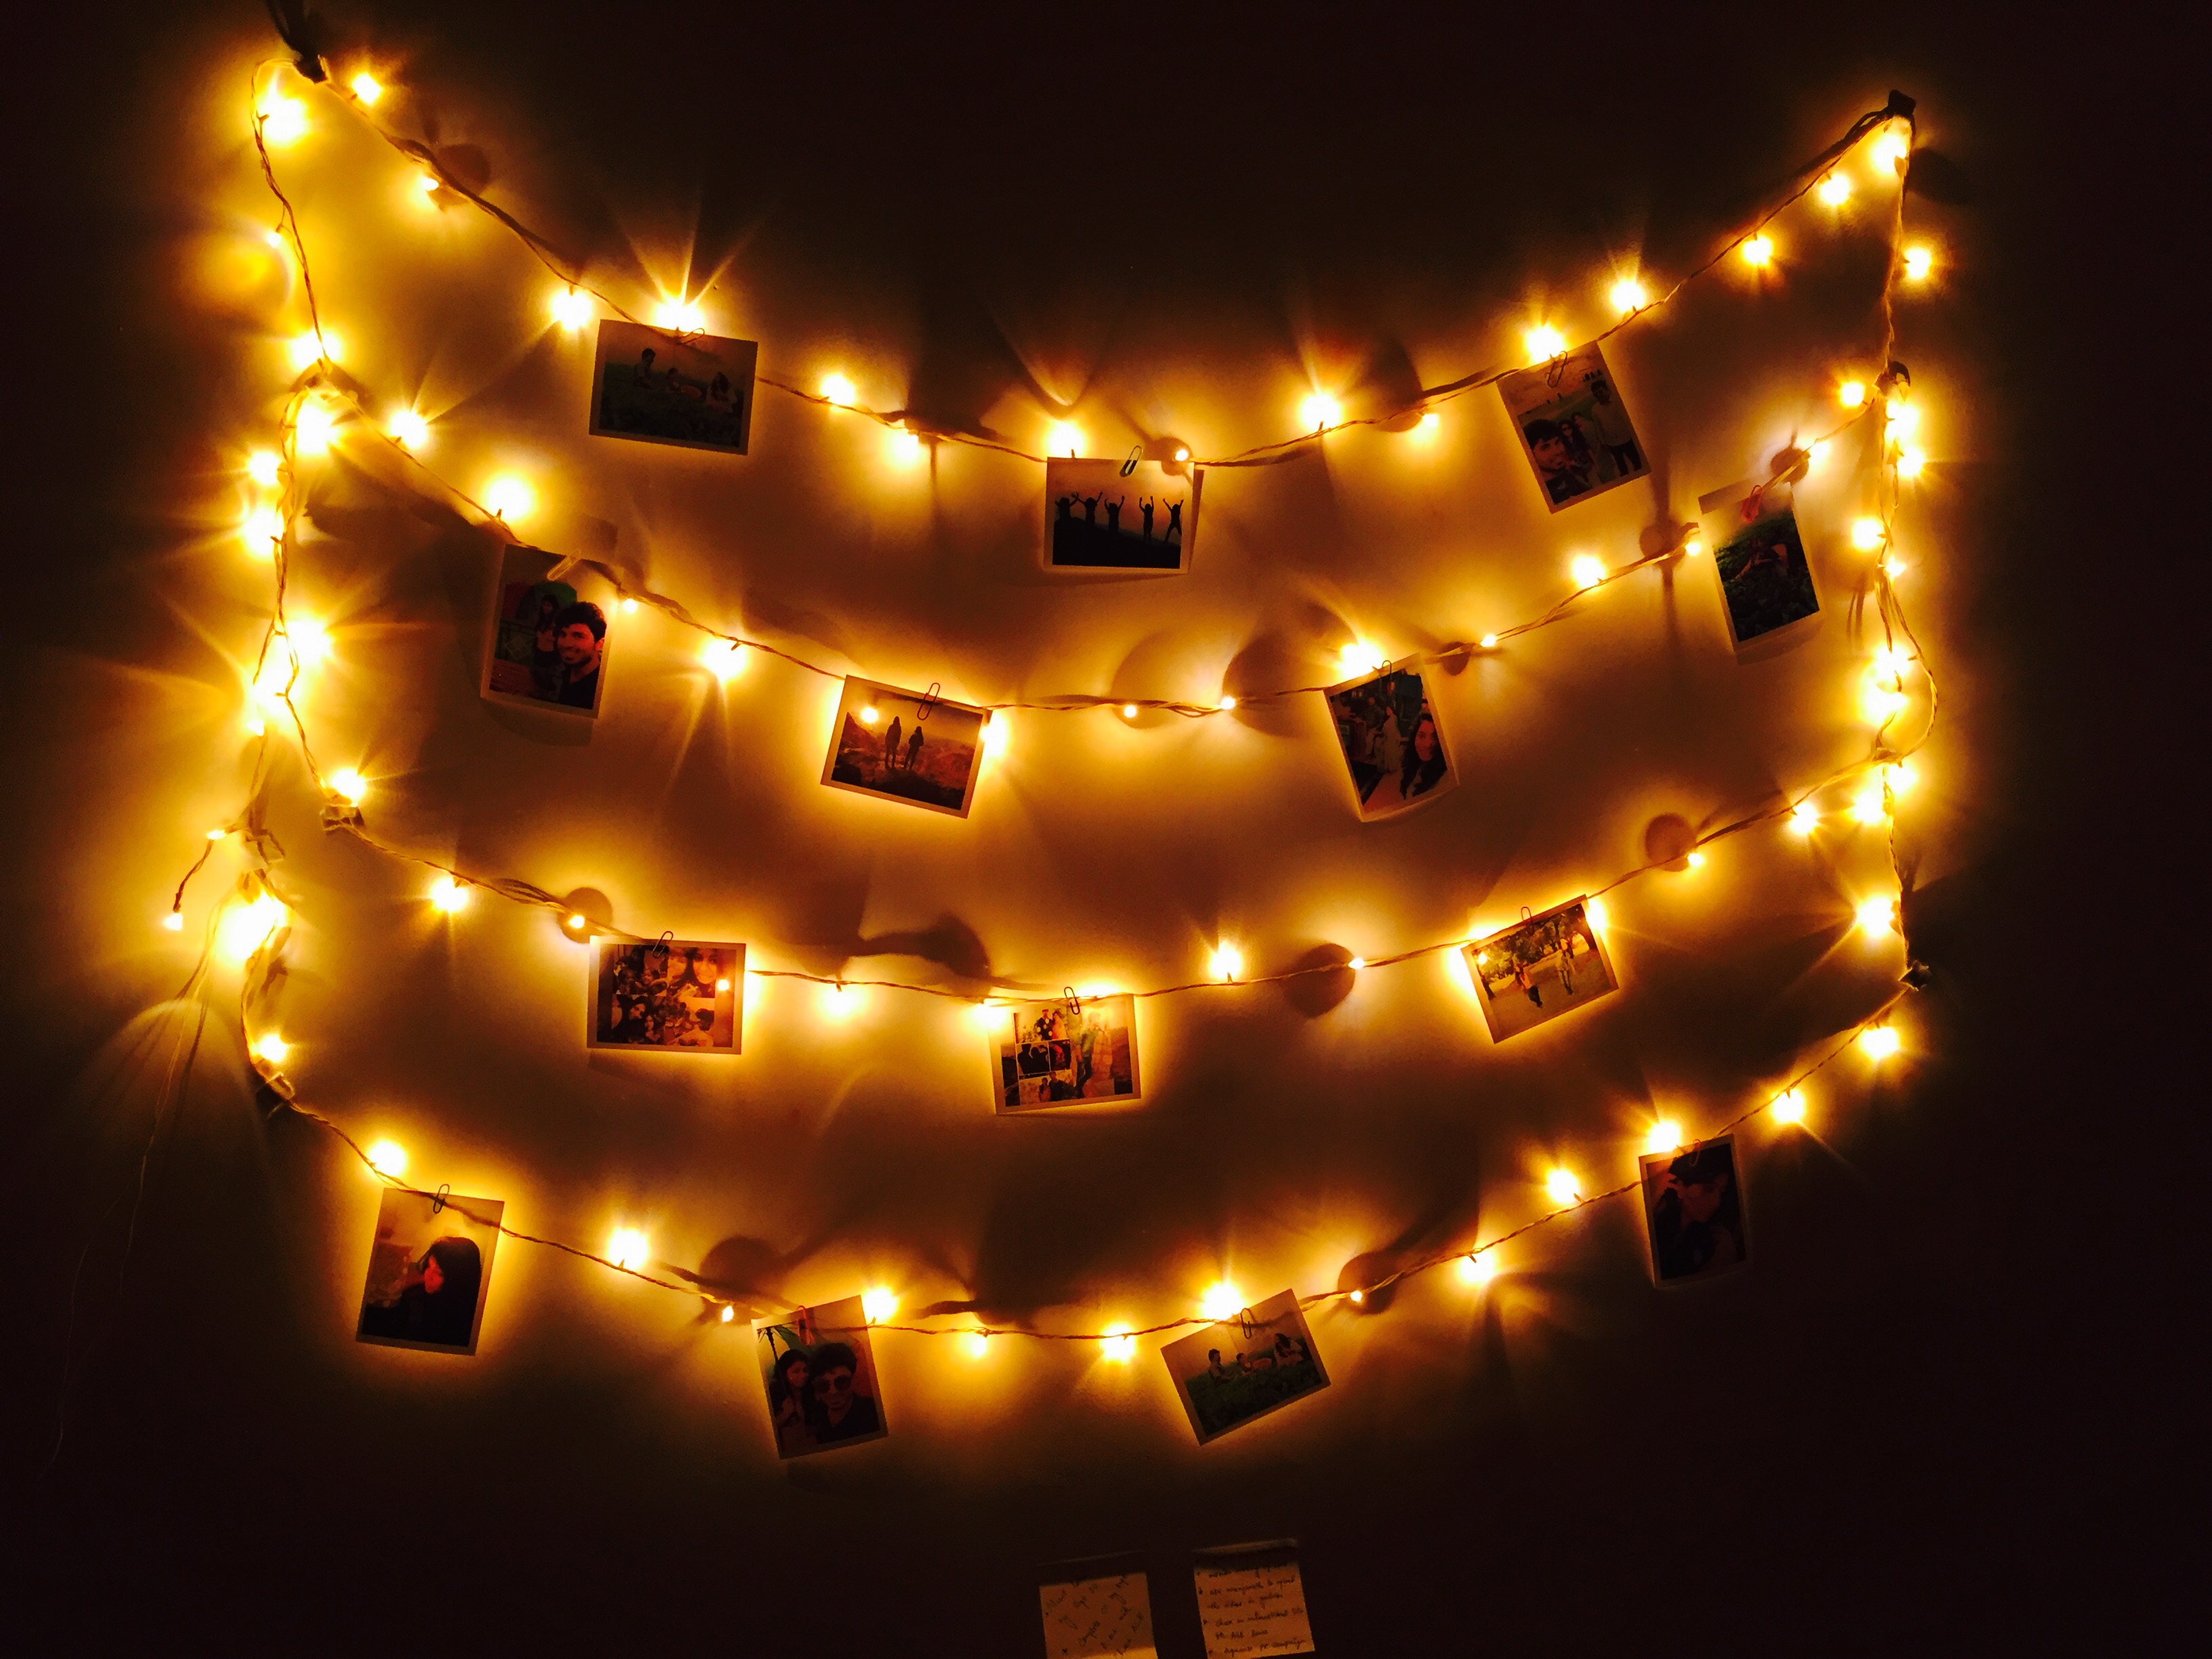 Best 3d Hd Wallpapers For Mobile 1000 Beautiful Fairy Lights Photos 183 Pexels 183 Free Stock